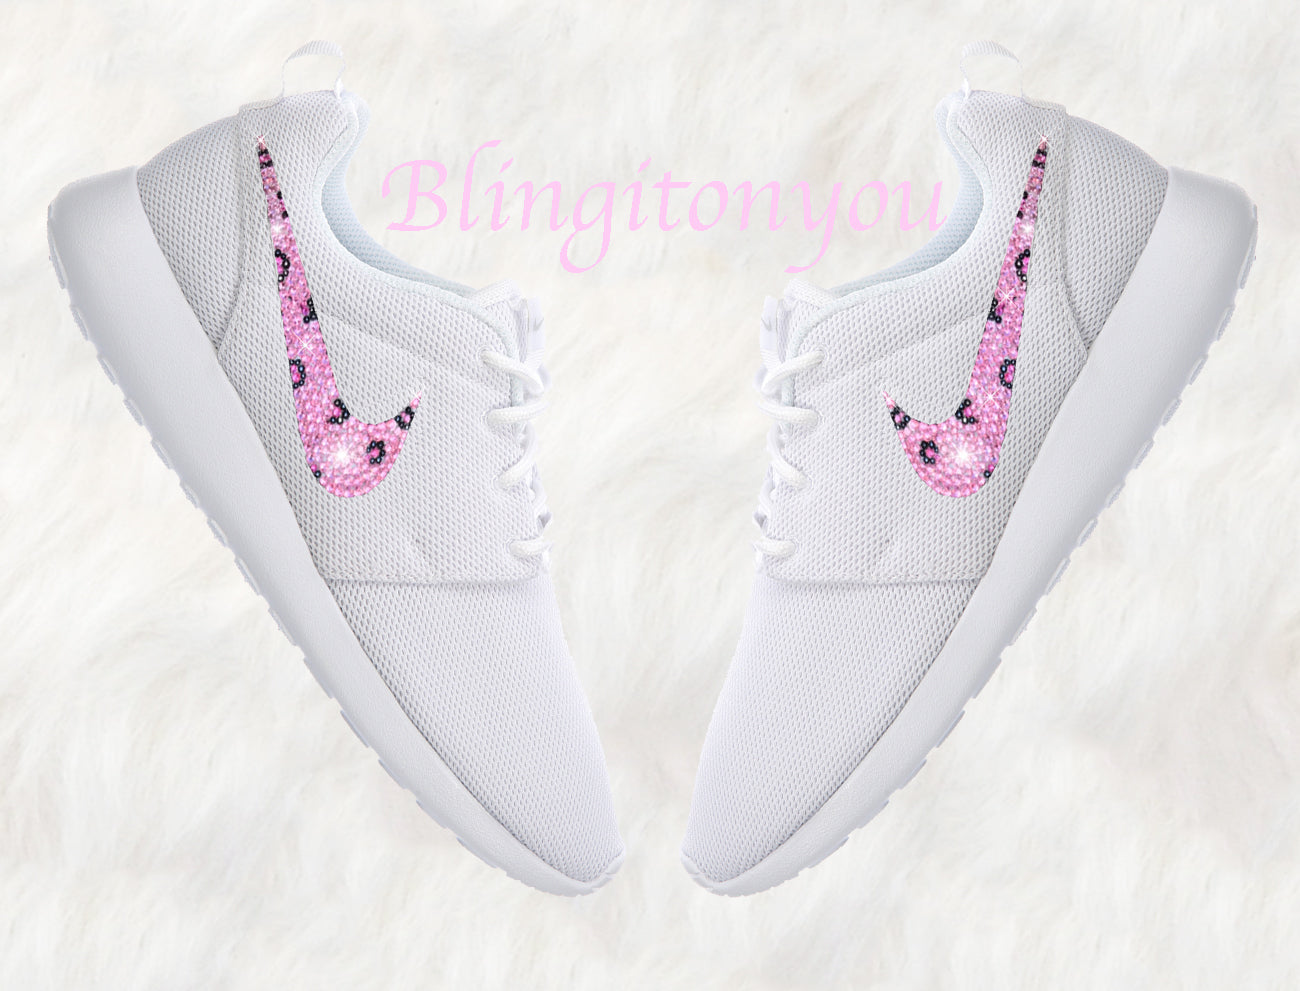 Swarovski Nike Roshe One Women s Shoes White Blinged Out With Leopard Pink  Swarovski - Swarovski Nike Shoes - Nike Bling Shoes 5d7dcedd6b